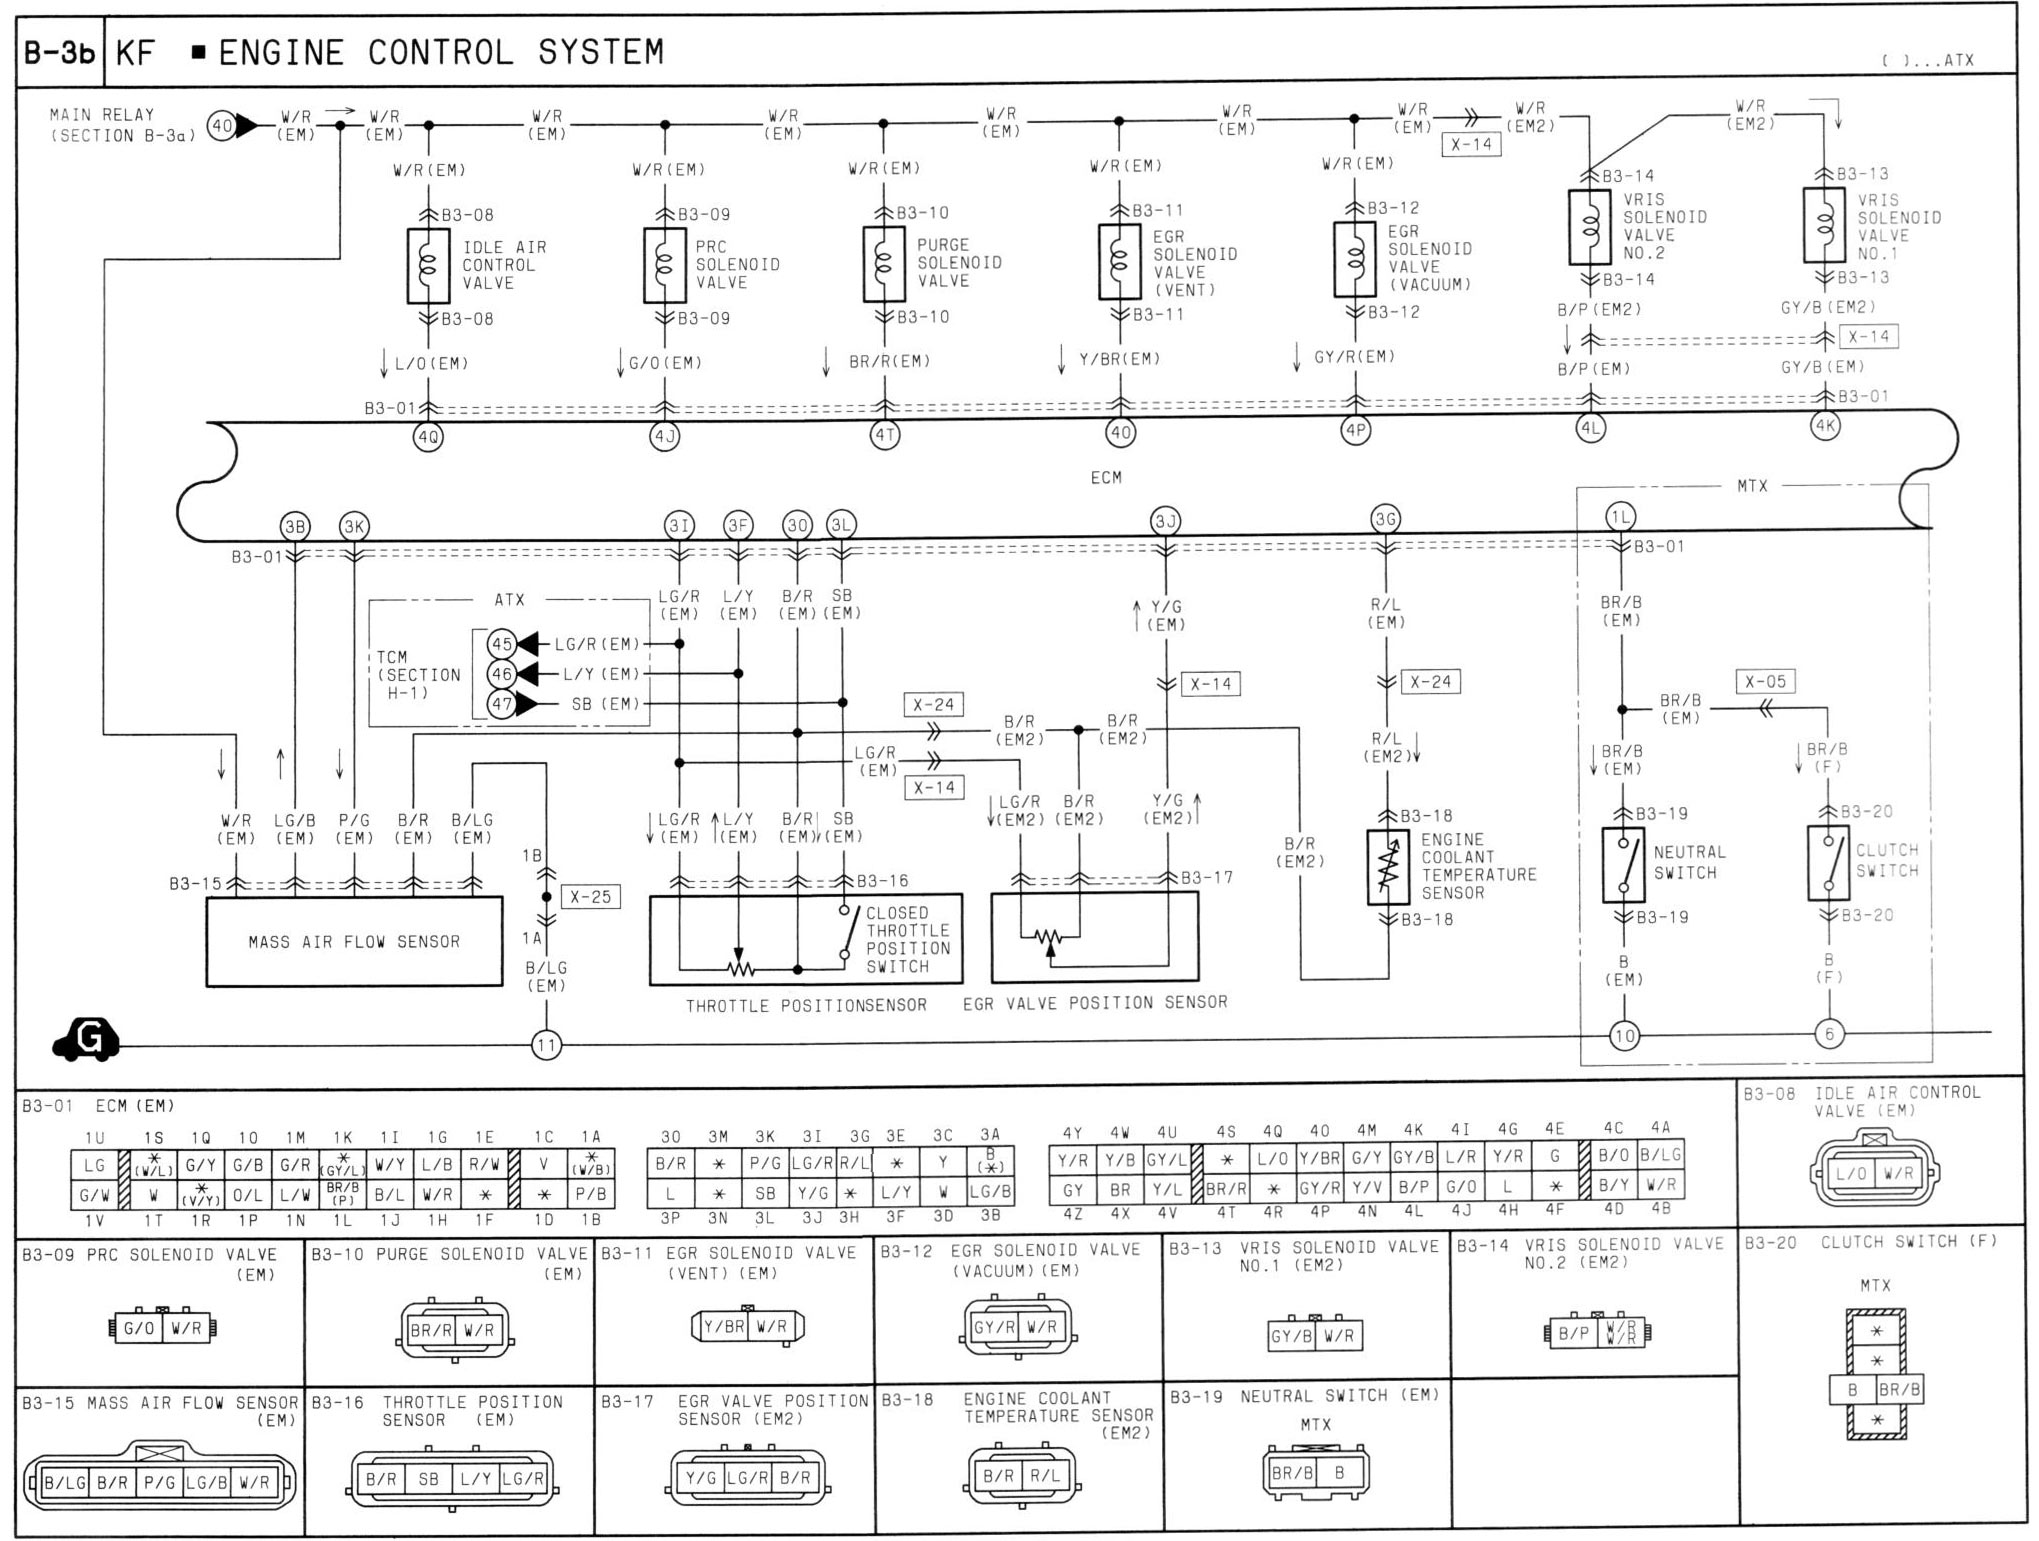 B 3b_KF_ECS mazda engine wiring diagram mazda wiring diagrams instruction mazda 3 wiring diagram at nearapp.co